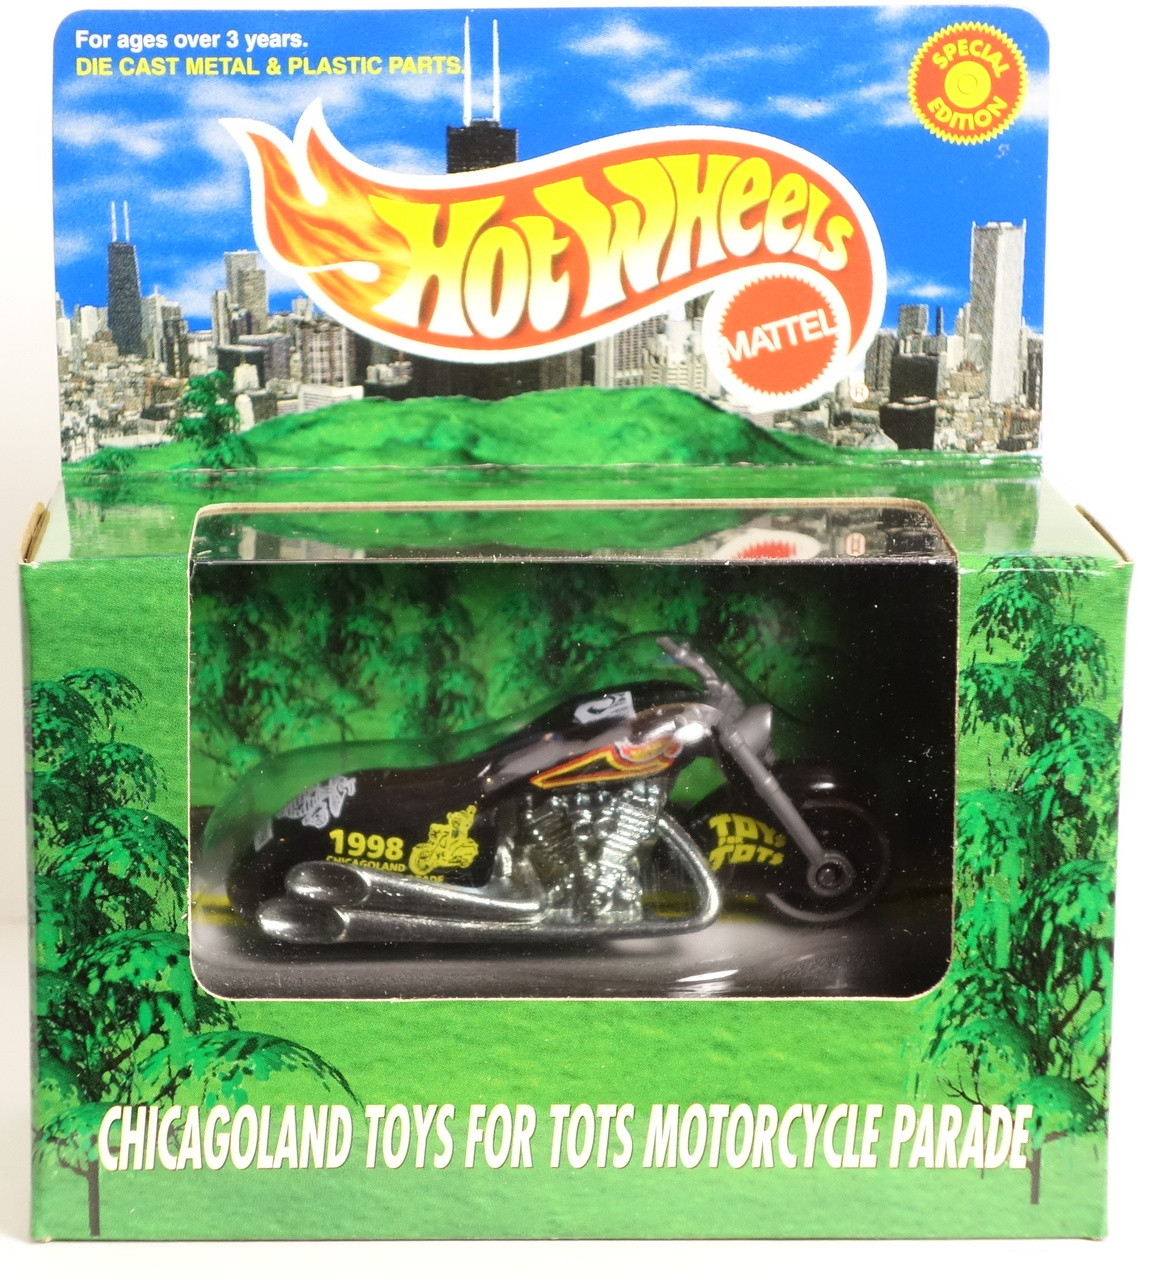 Toys For Tots Rating : Chicagoland toys for tots